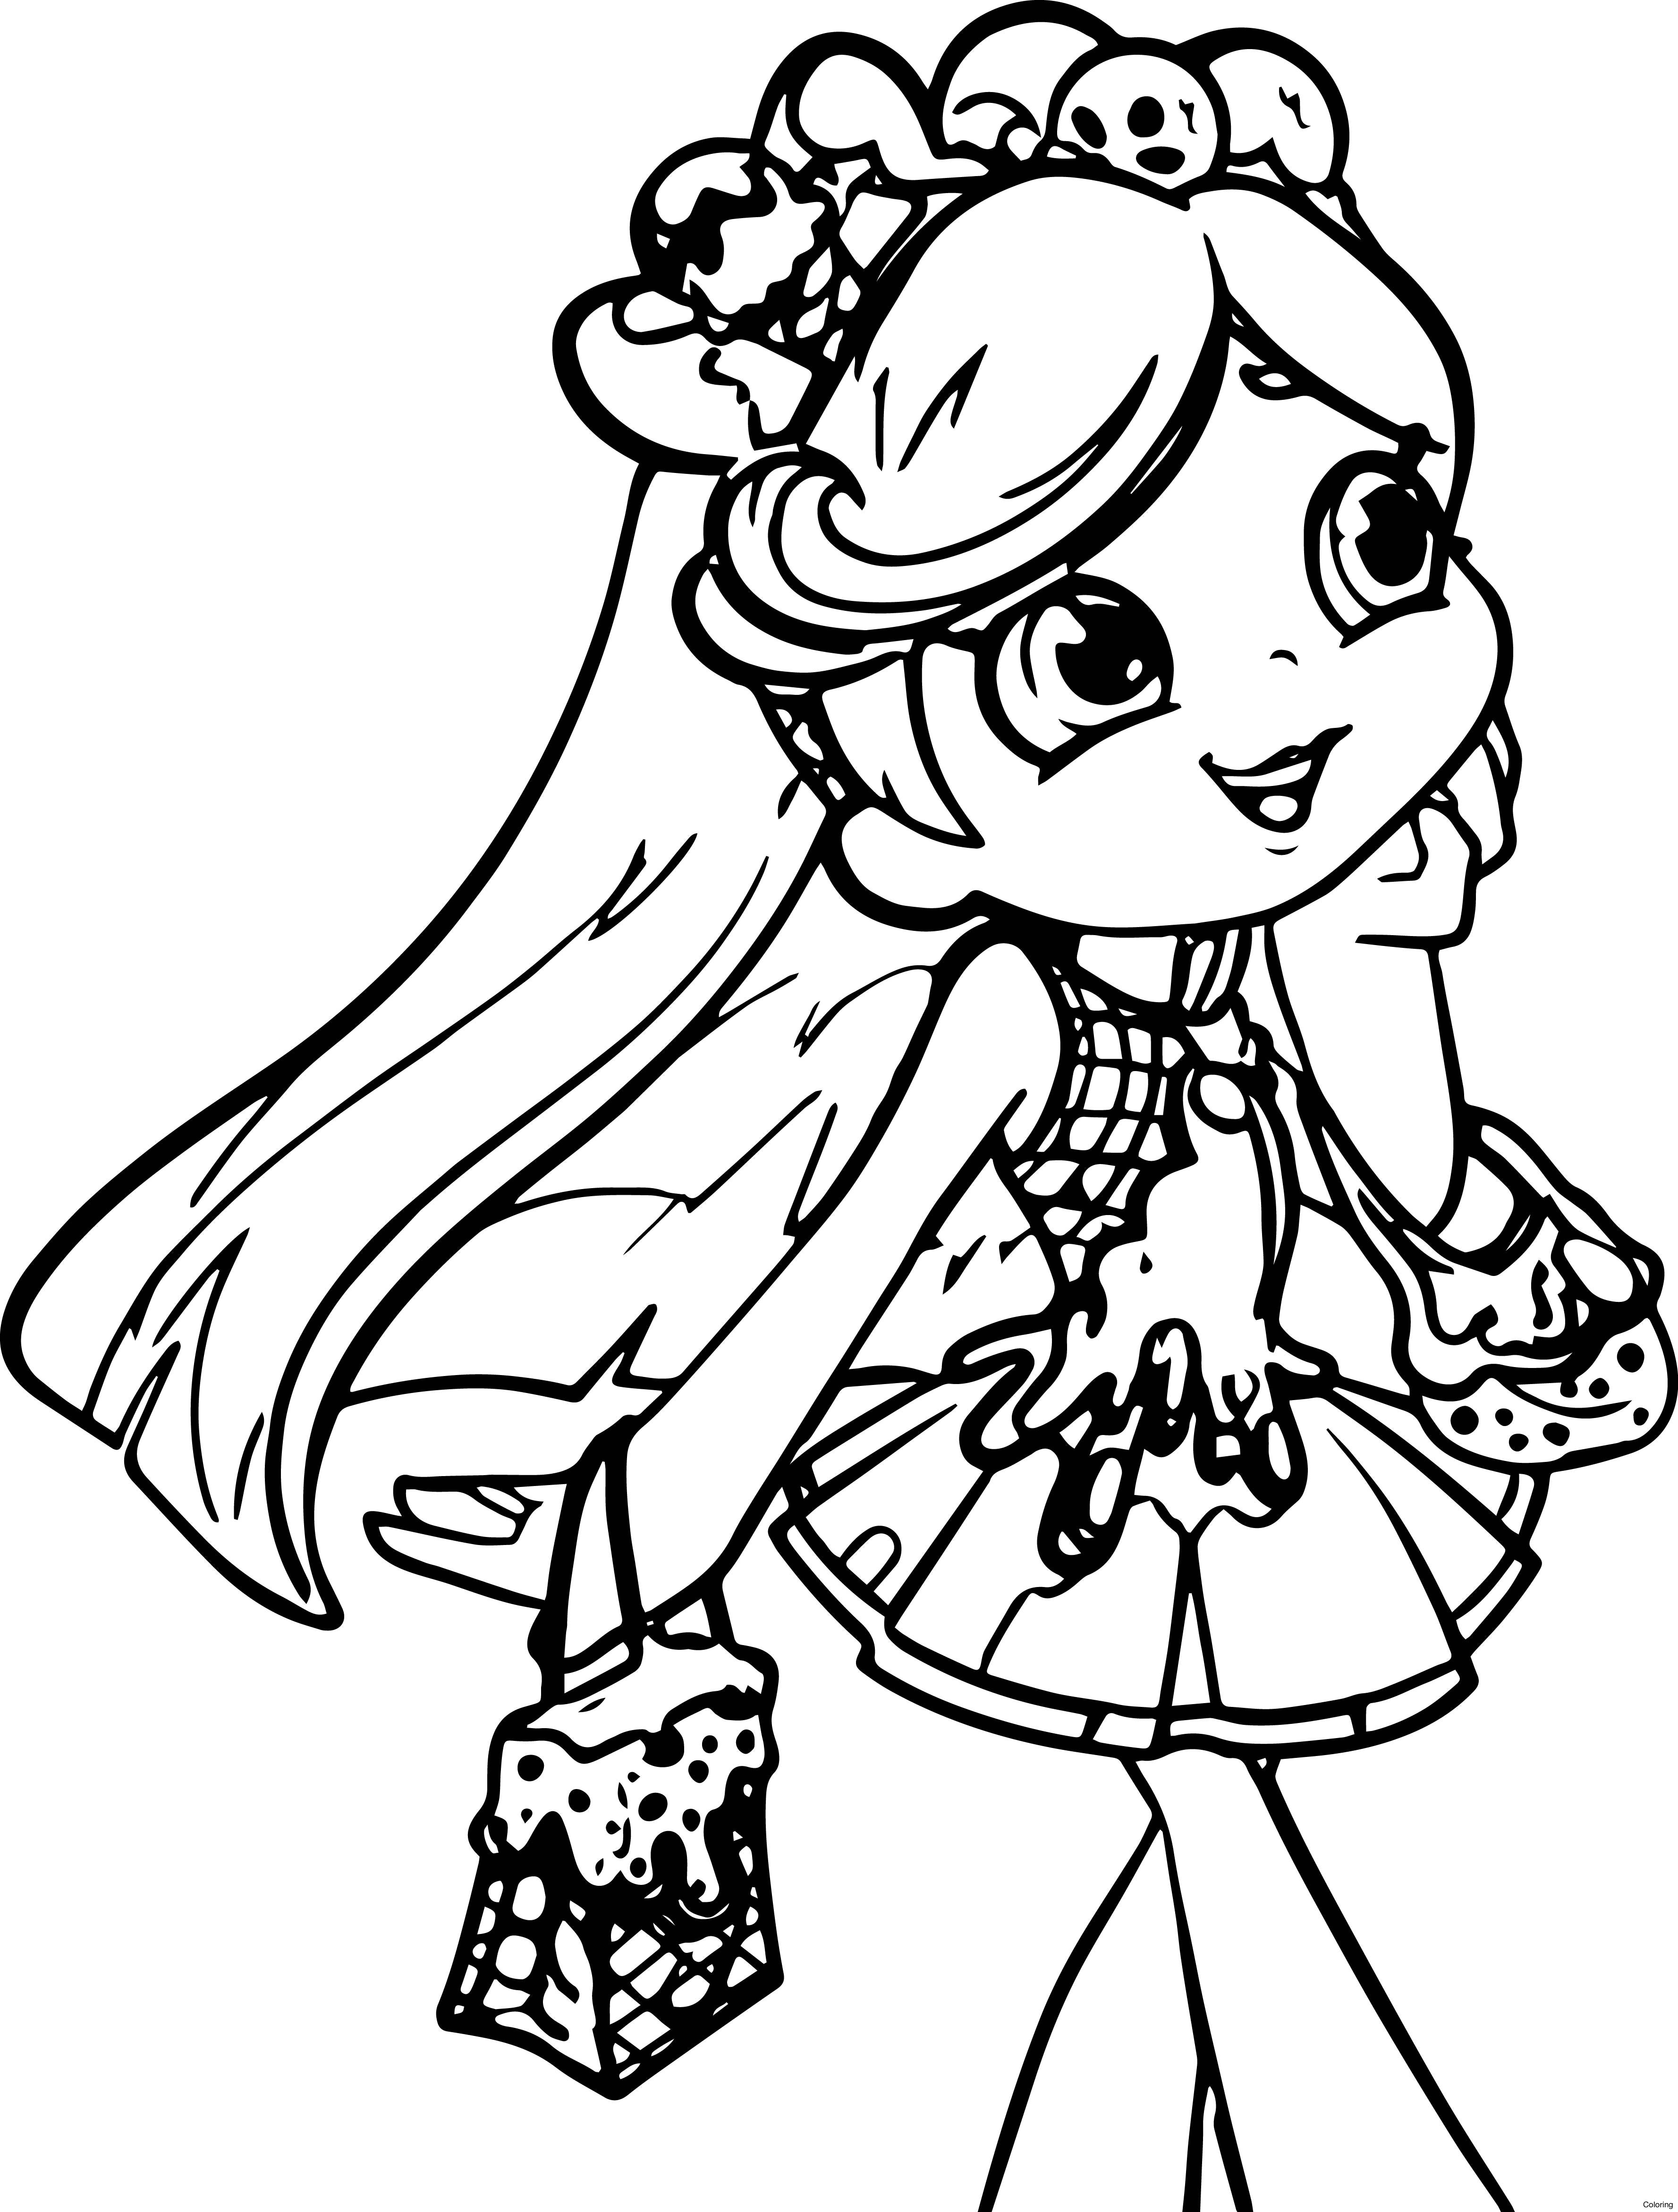 shopkin pictures that you can print shopkin coloring pages that you can print coloring pages can you that shopkin pictures print